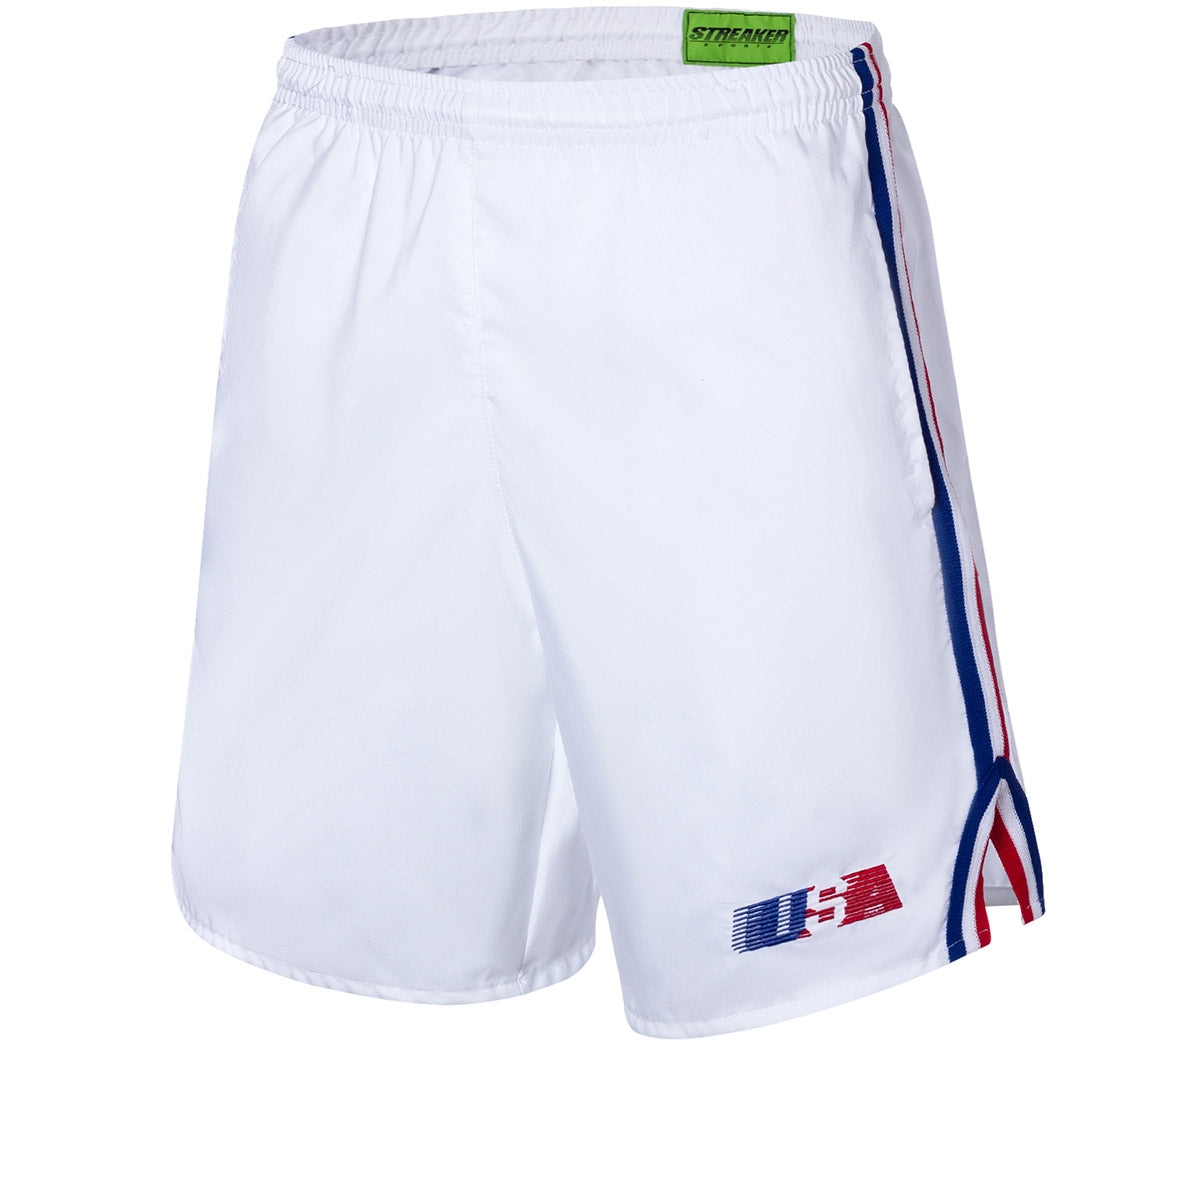 1984 Team USA Olympic Shorts